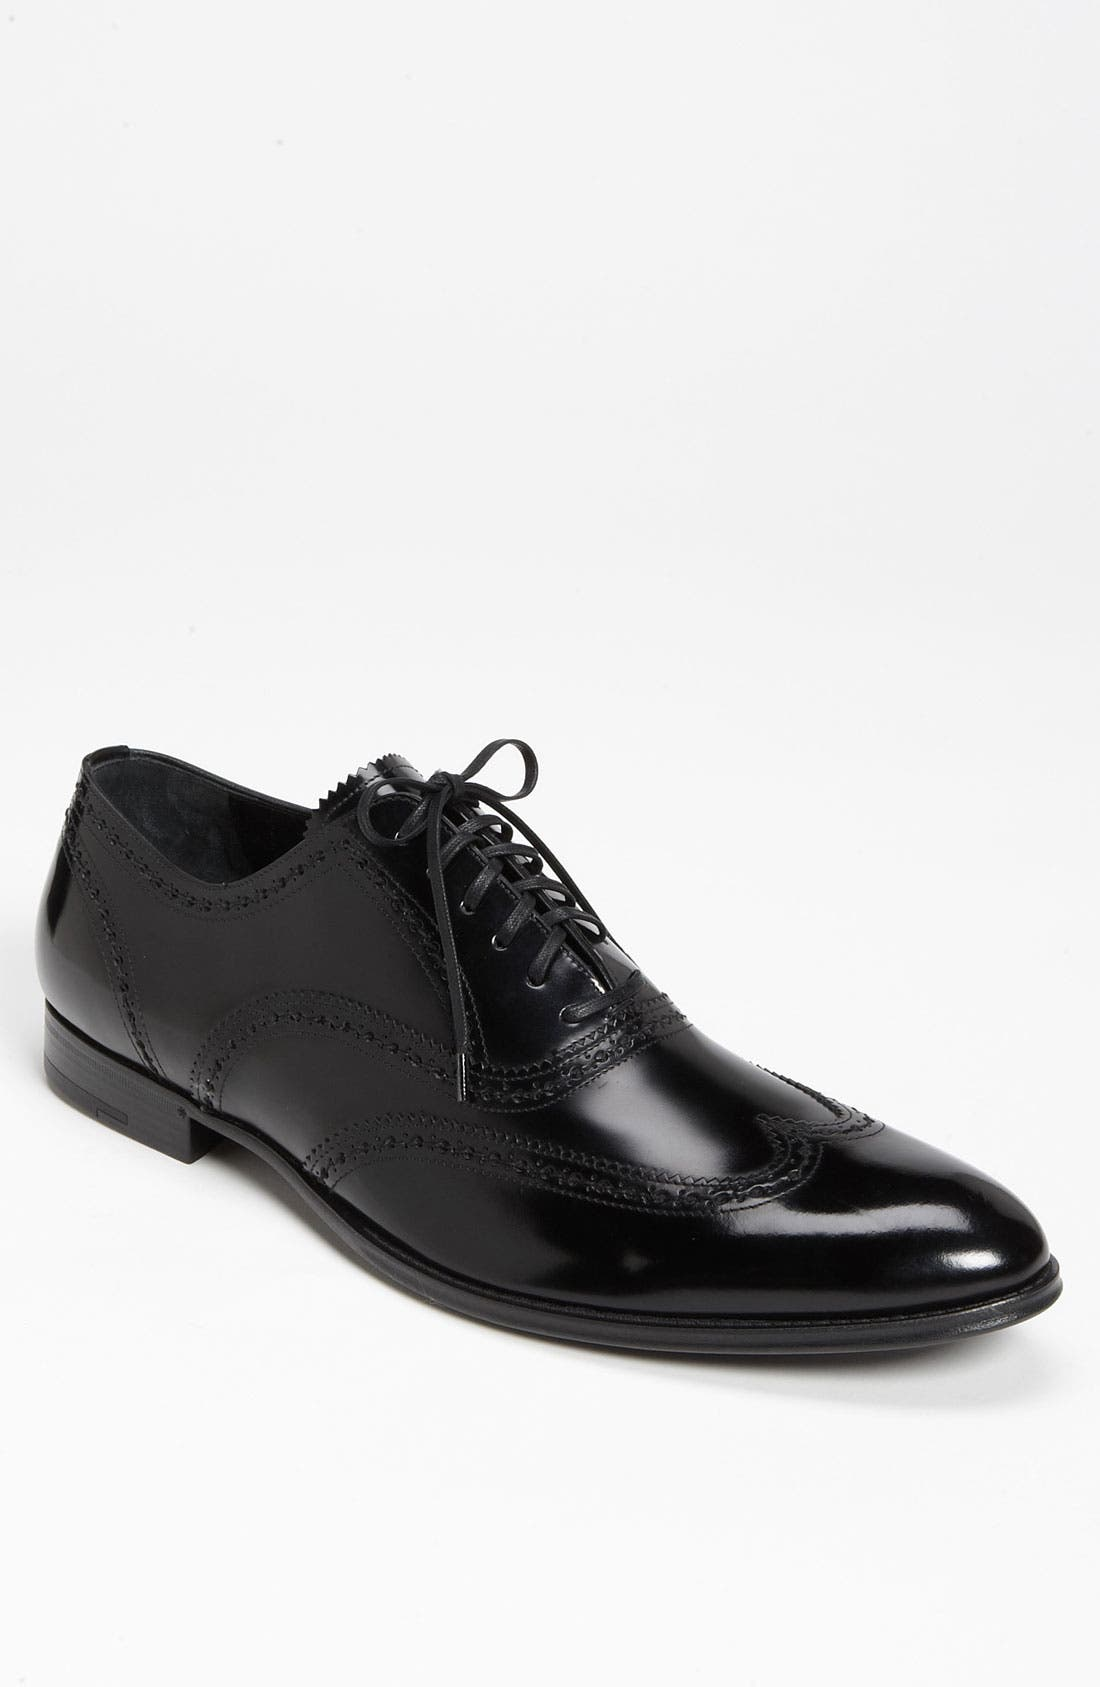 Alternate Image 1 Selected - Dolce&Gabbana Wingtip Oxford